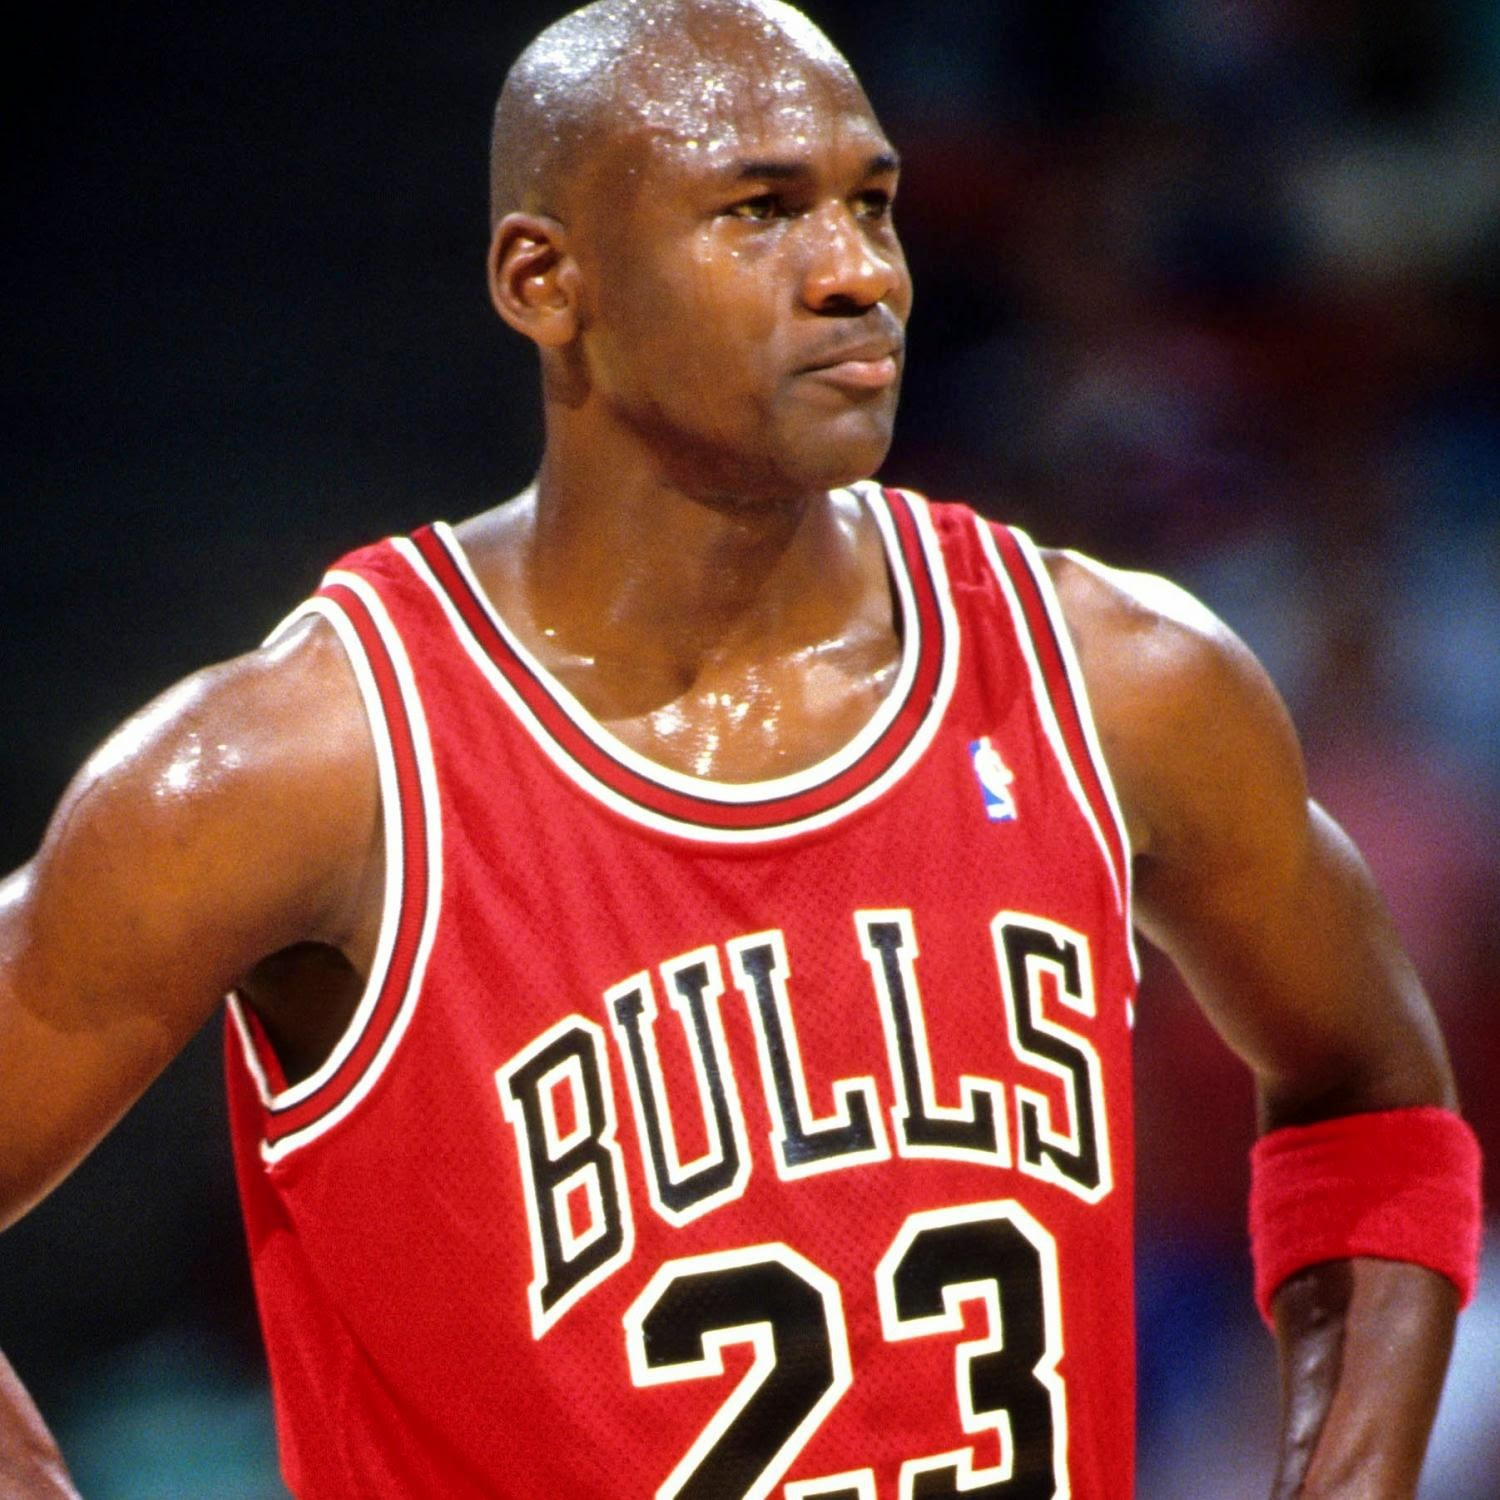 biografi pemain basket legenda michael jordan pemain terbaik info olahraga dunia. Black Bedroom Furniture Sets. Home Design Ideas